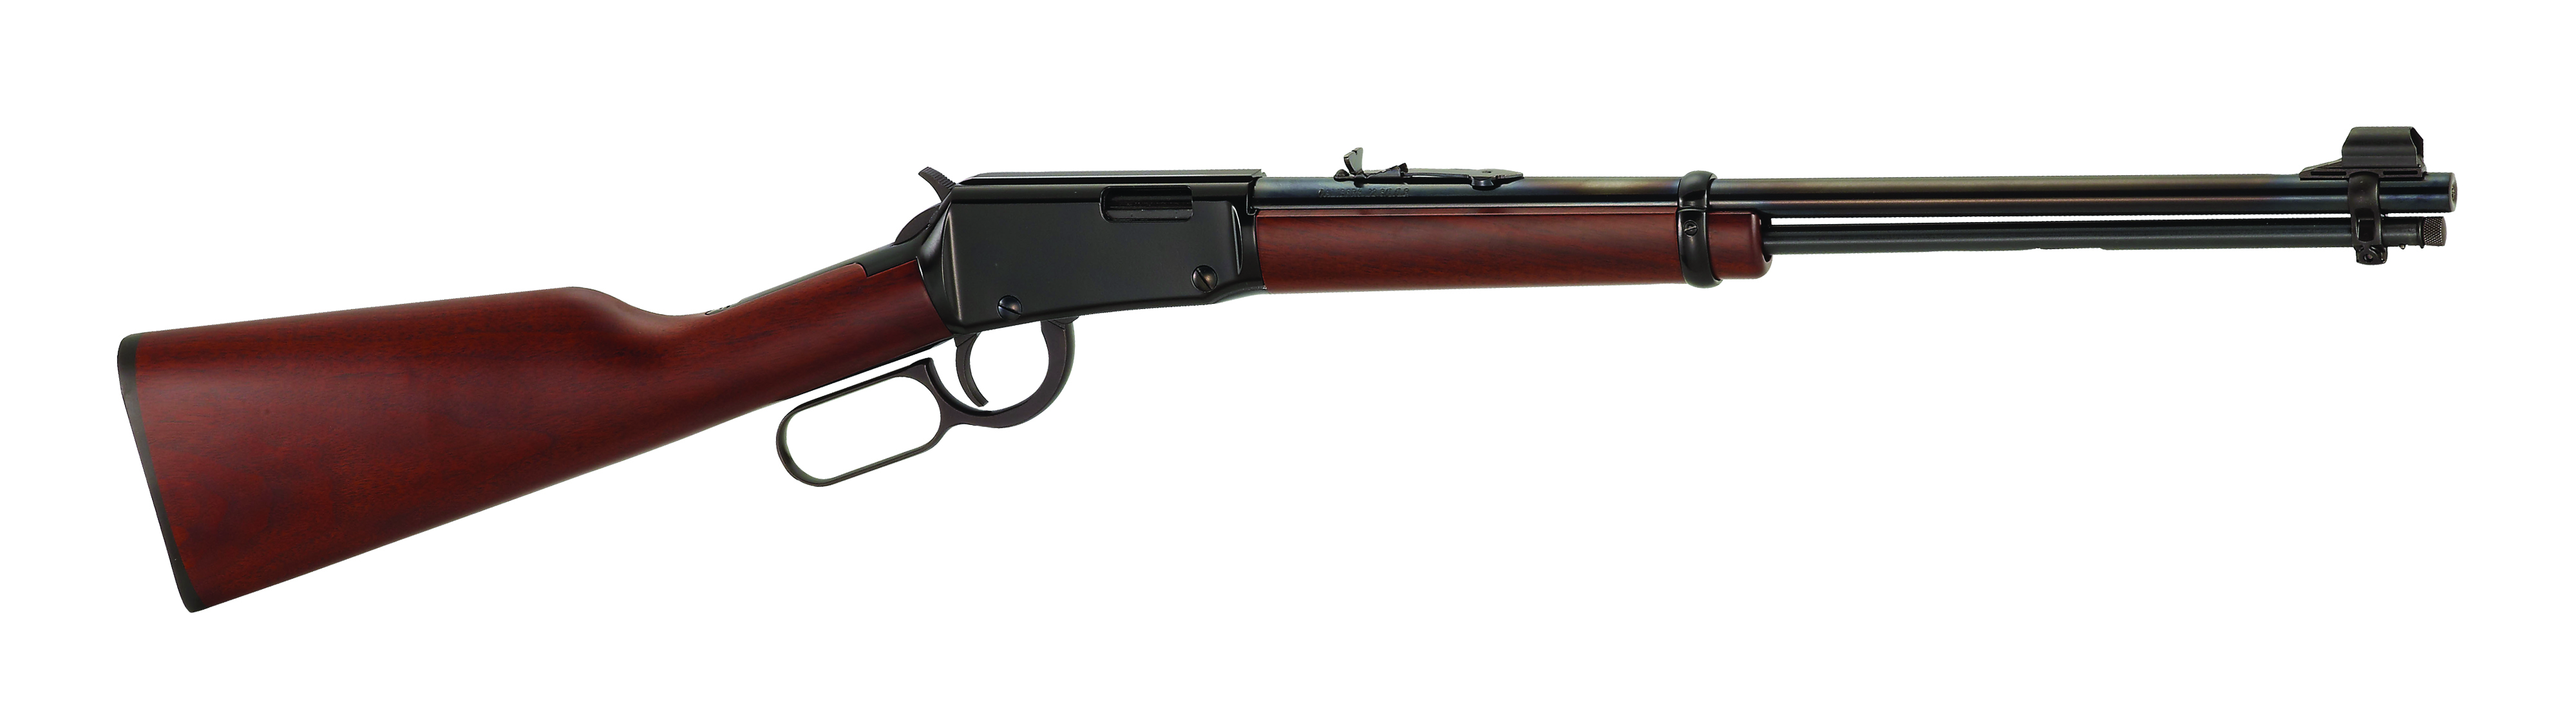 """Henry Lever Action .22 S/L/LR 18.25"" Round Blued Steel Barrel"